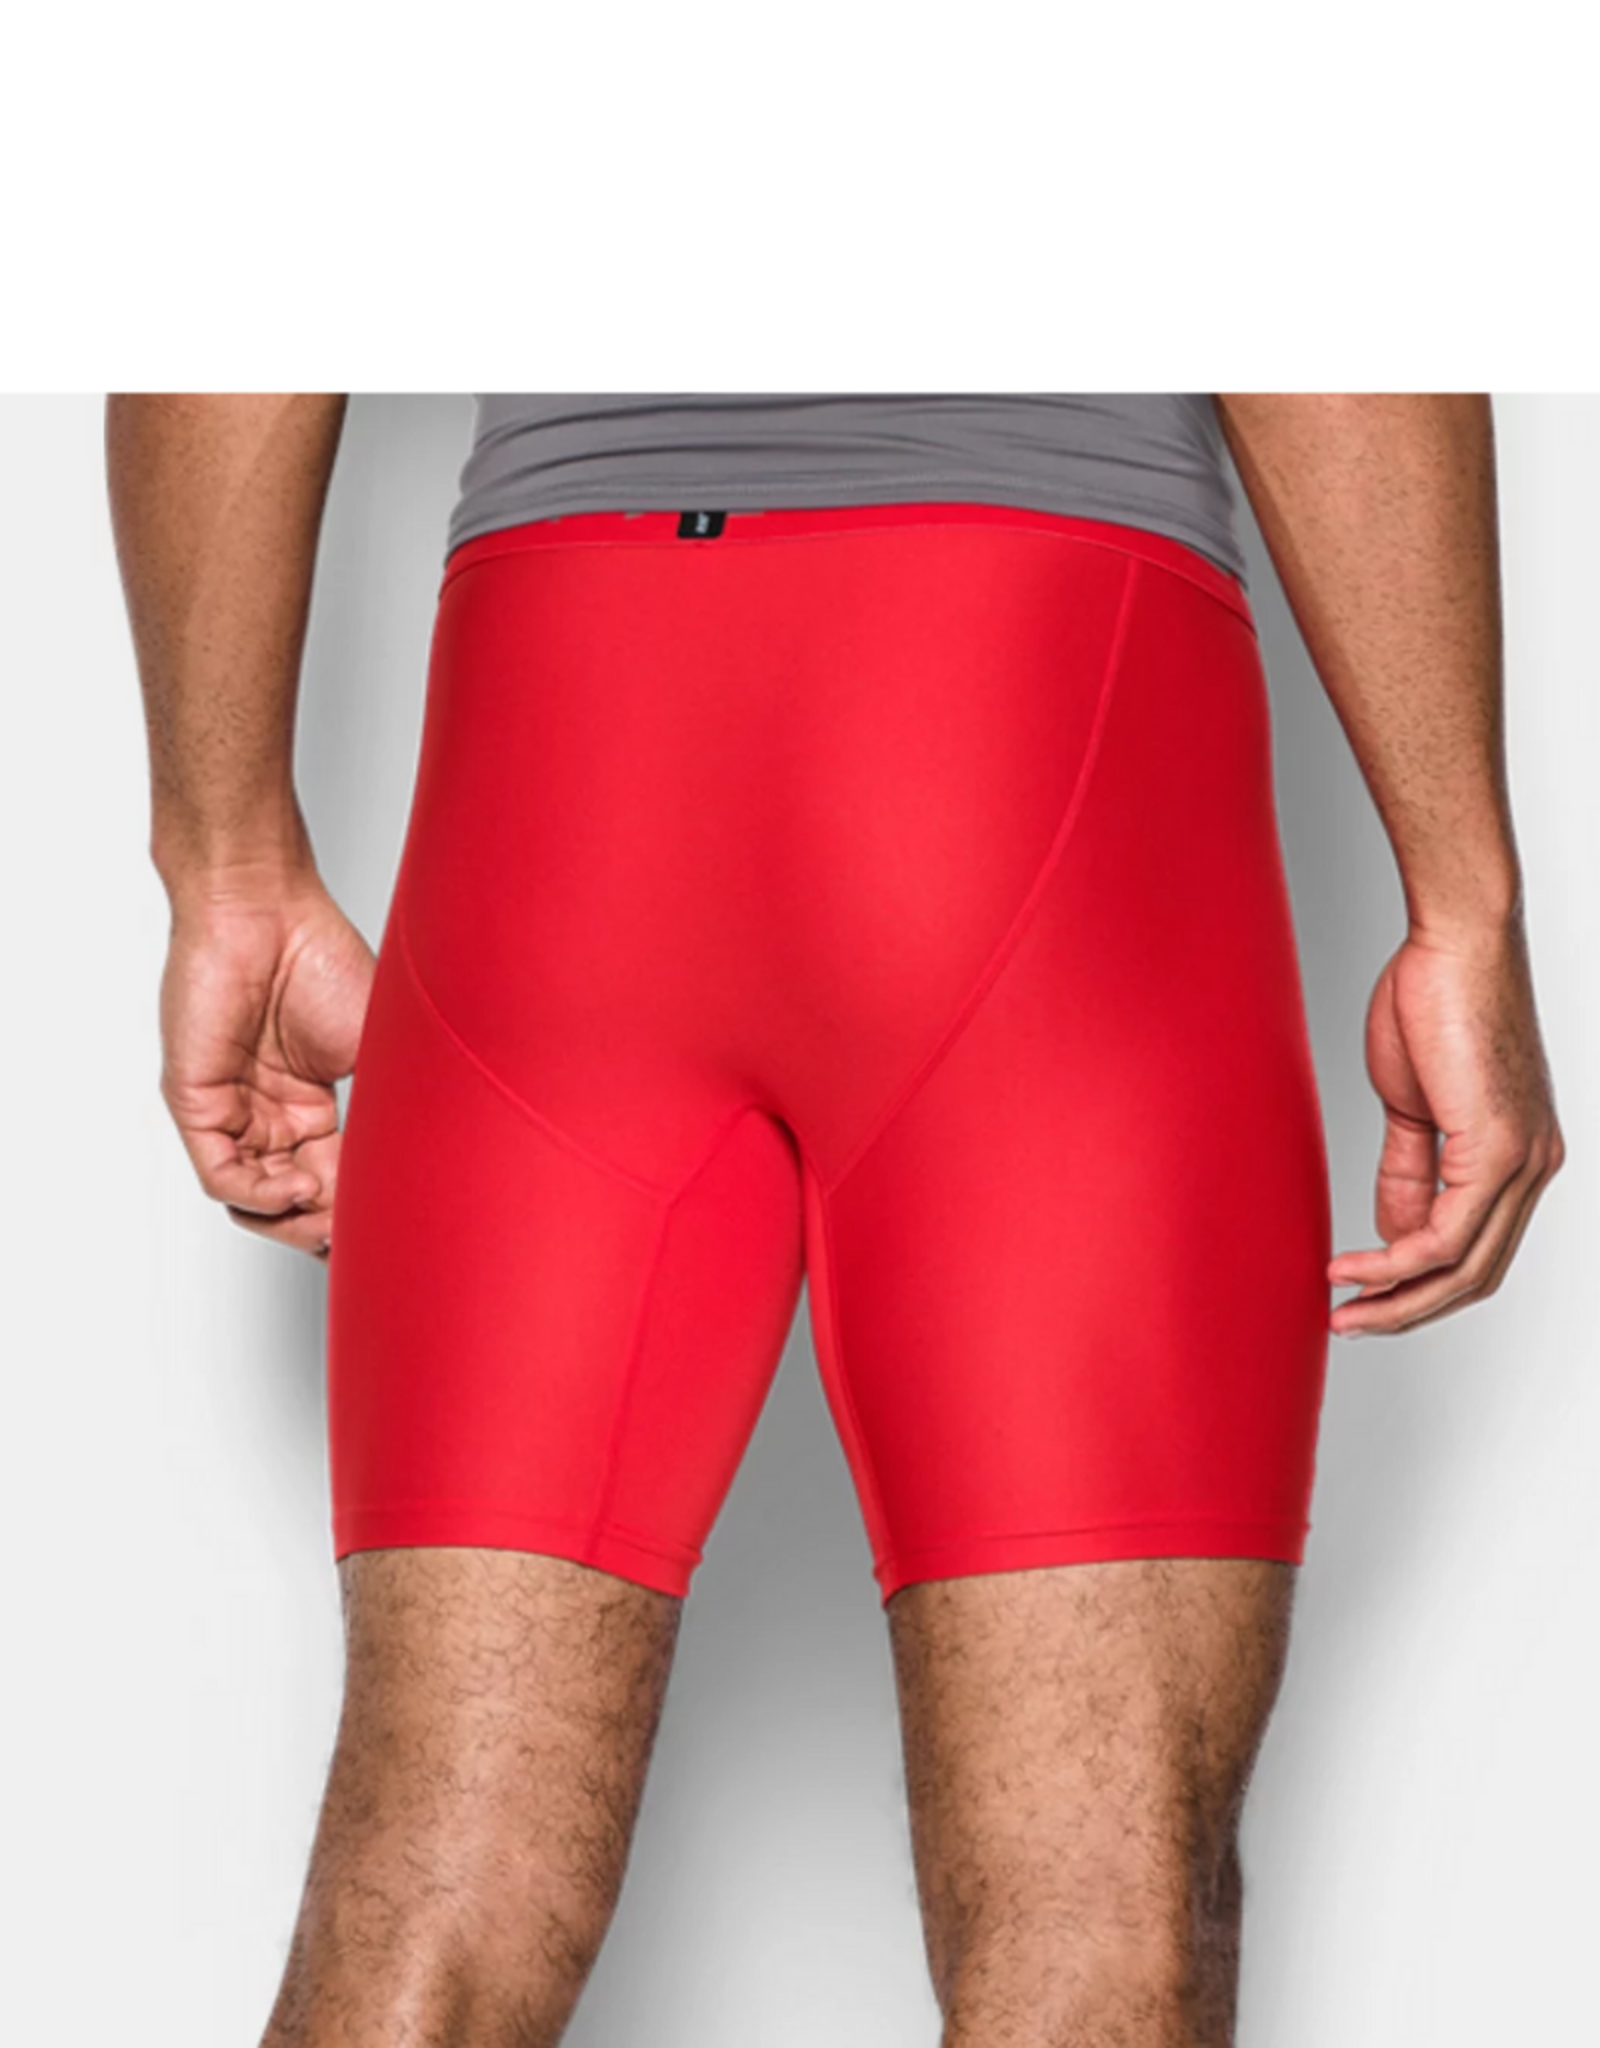 Under Armour Men's Compression Short Red